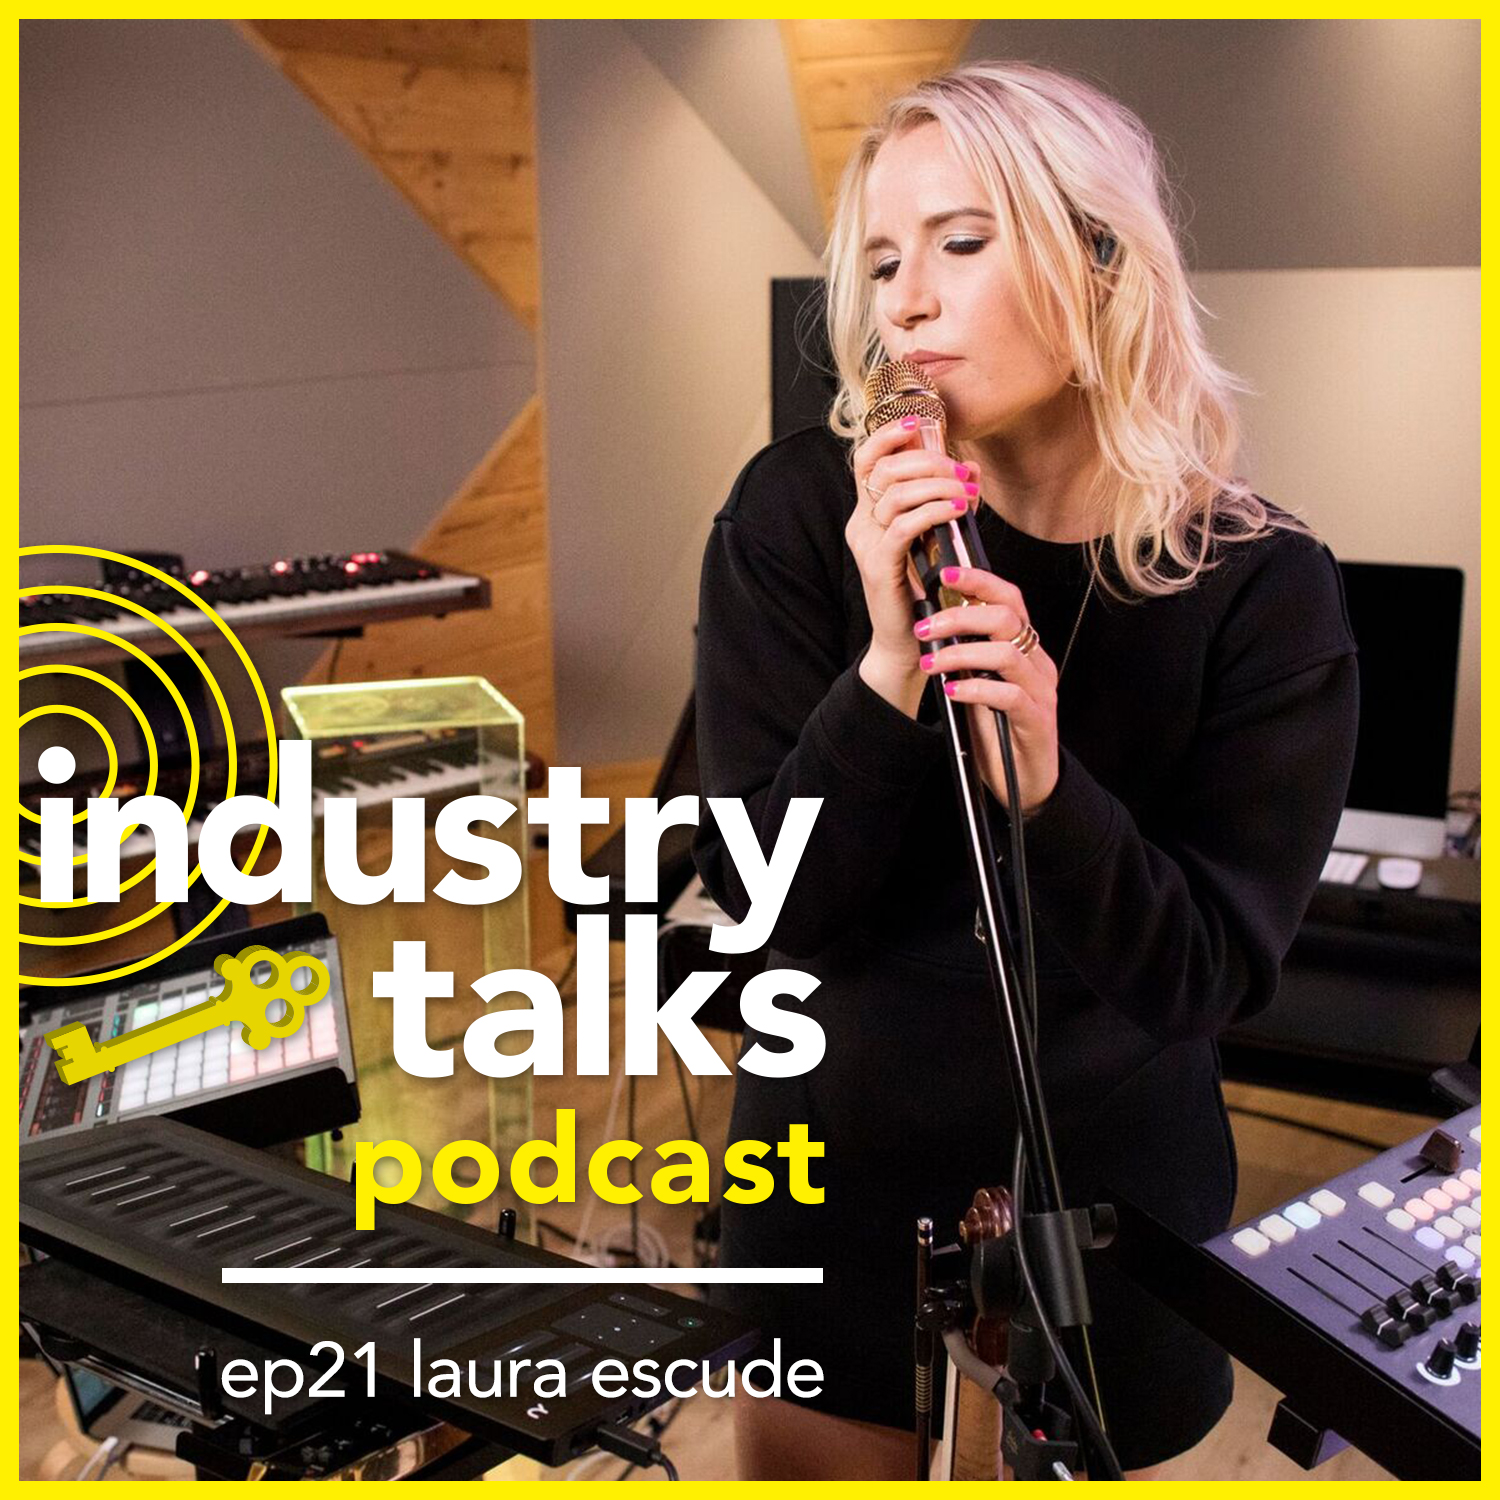 Industry_Talks-Podcast-ep21-Square.jpg